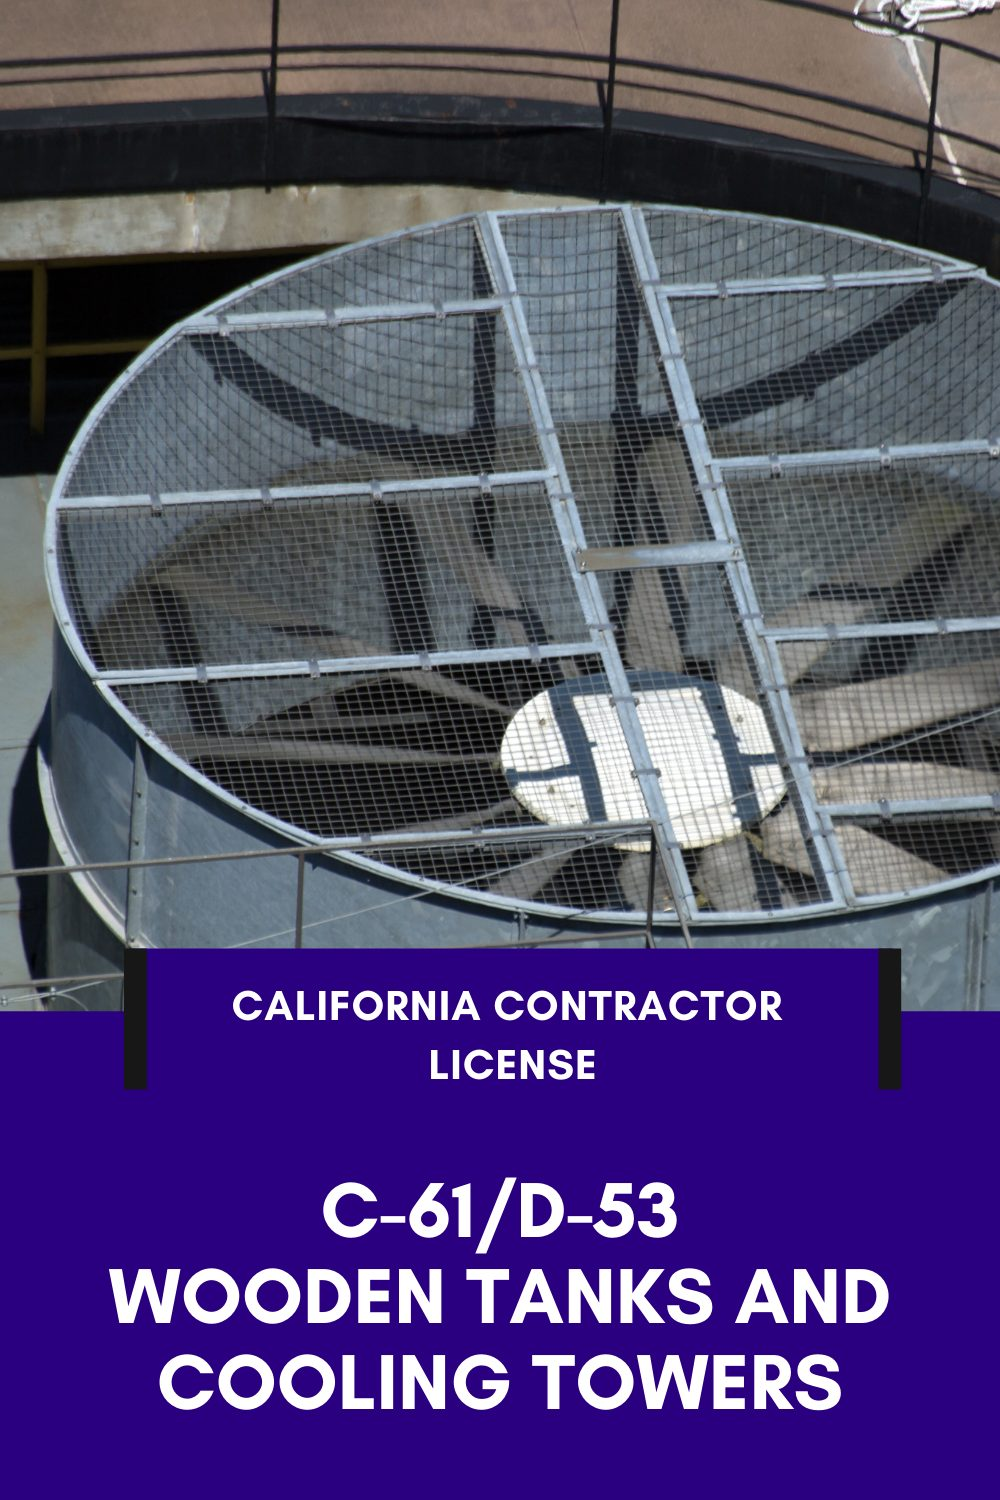 what can you do with a C-61/D-53 wooden tanks contractor license in California